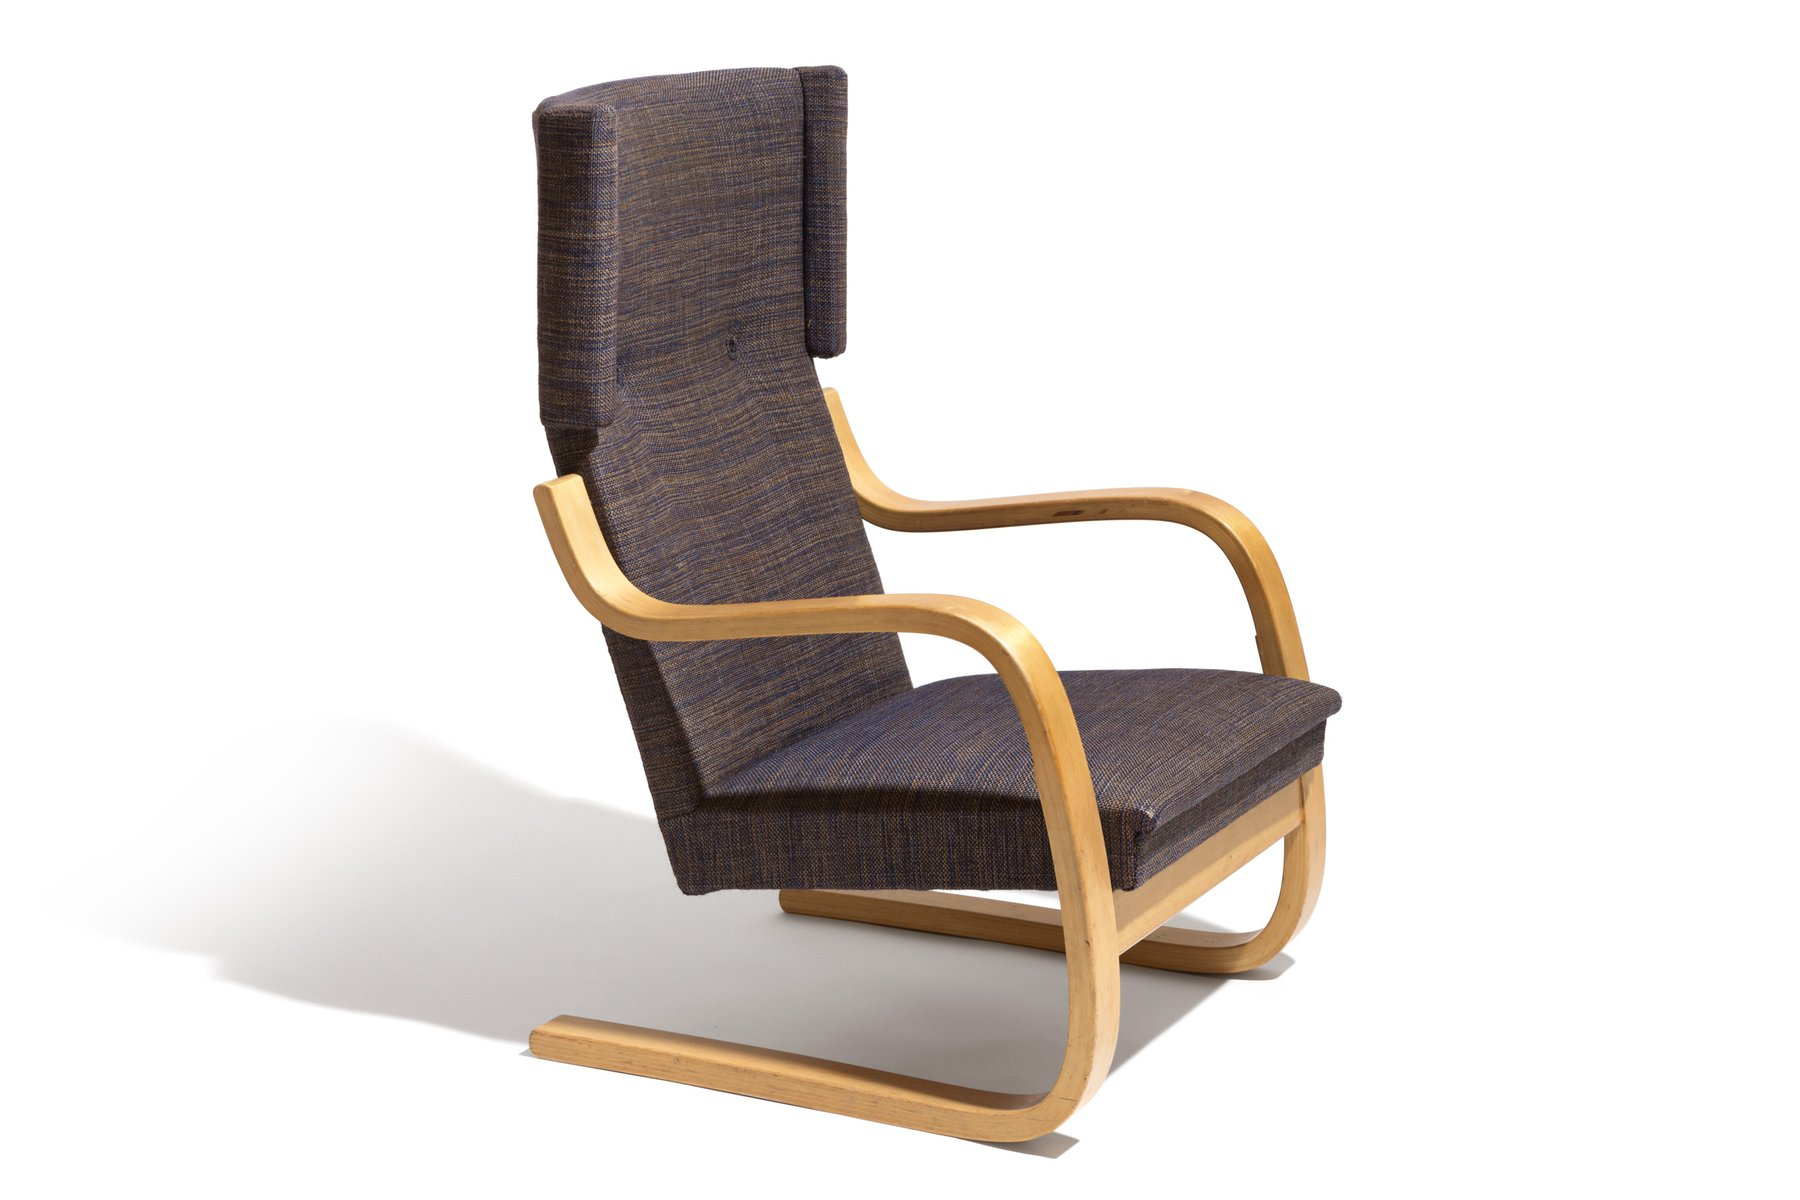 Etonnant Vintage 36/401 Wingback Lounge Chair By Alvar Alto For Artek